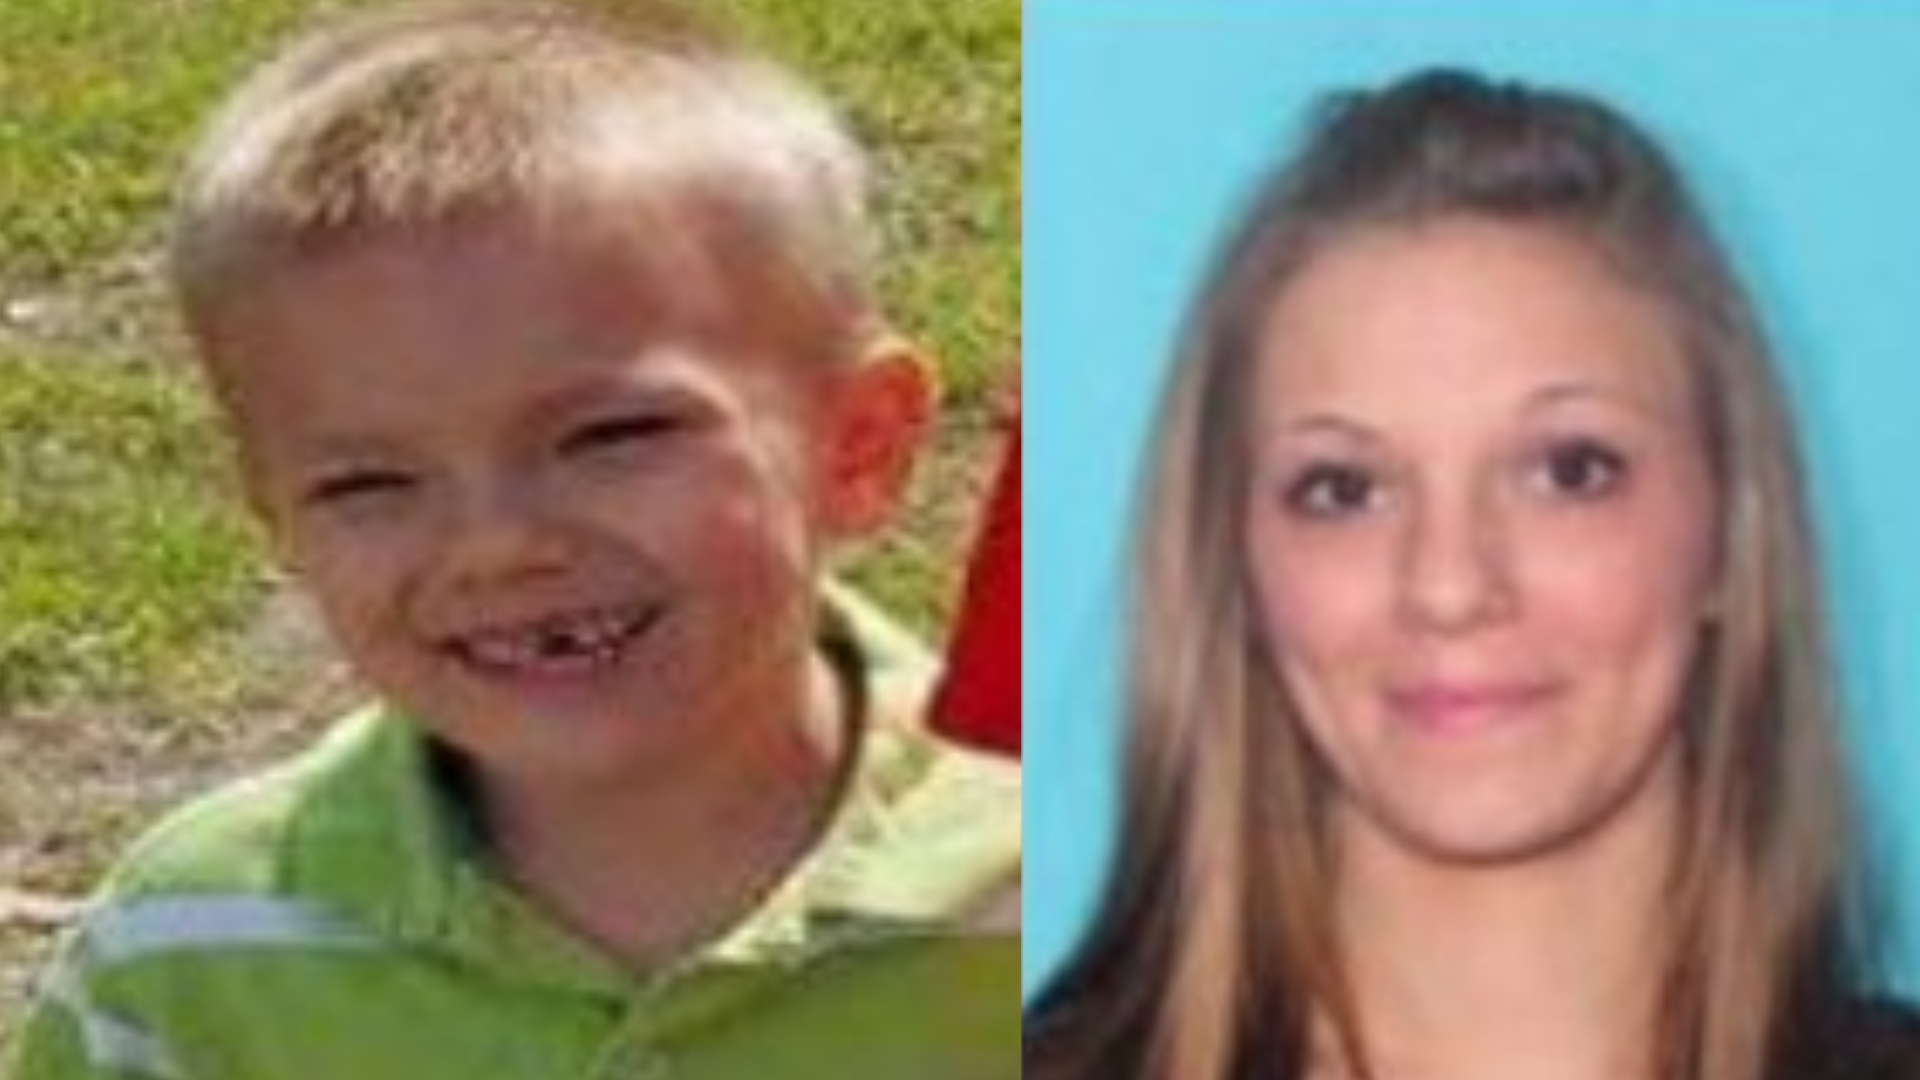 Missing child alert issued for Nassau County 5-year-old